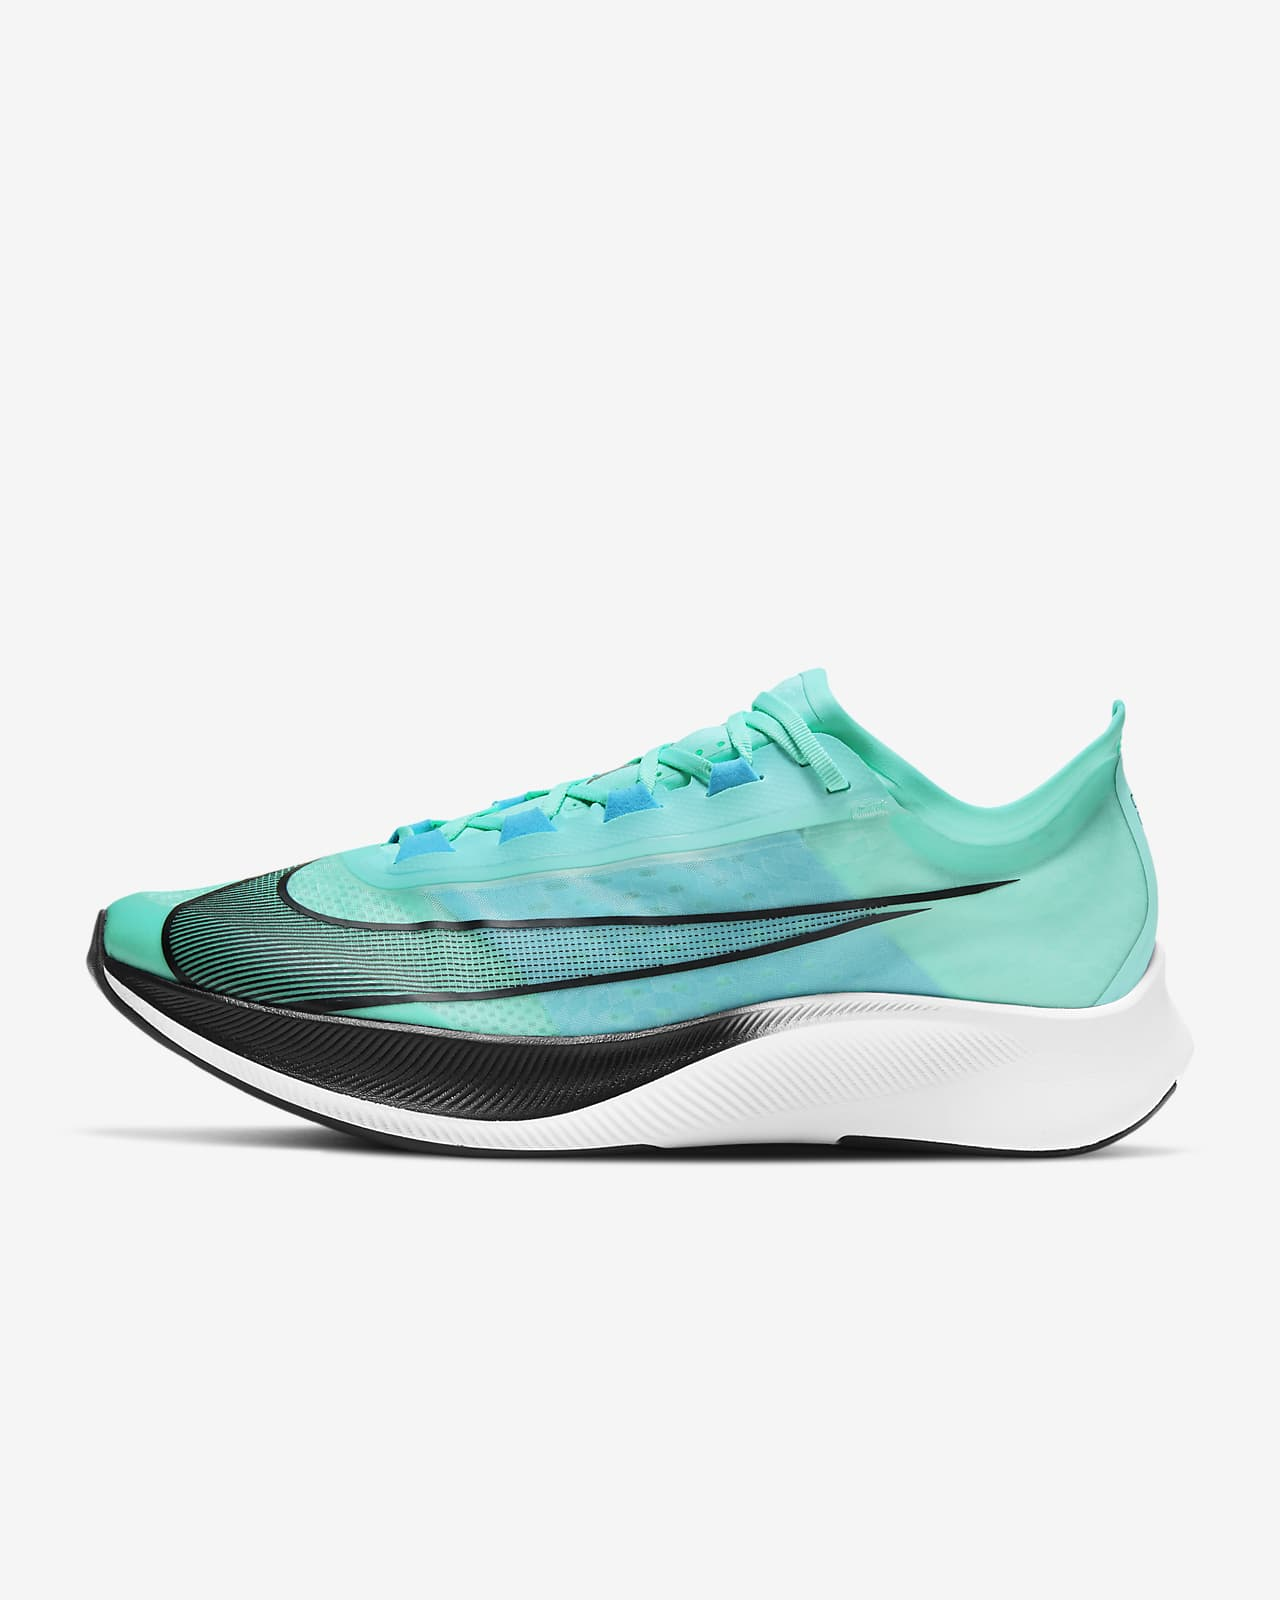 Chaussure de running Nike Zoom Fly 3 pour Homme